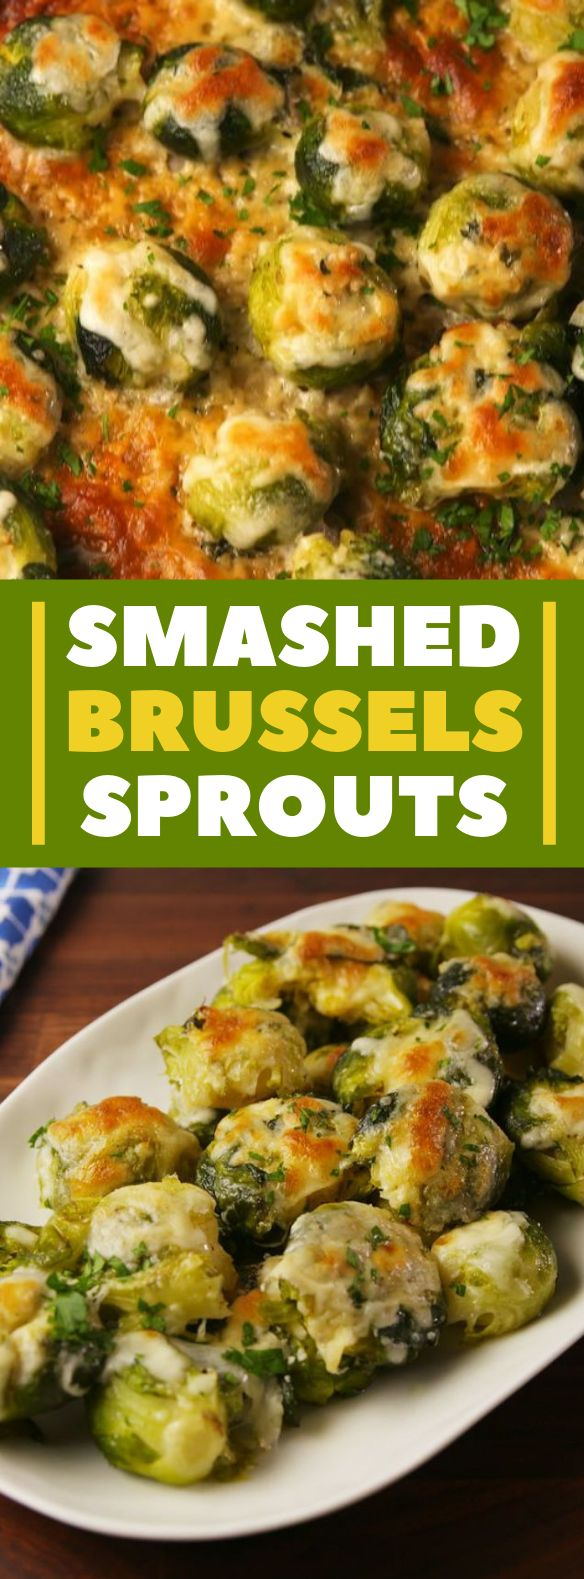 Smashed Brussels Sprouts #veggies #vegetables